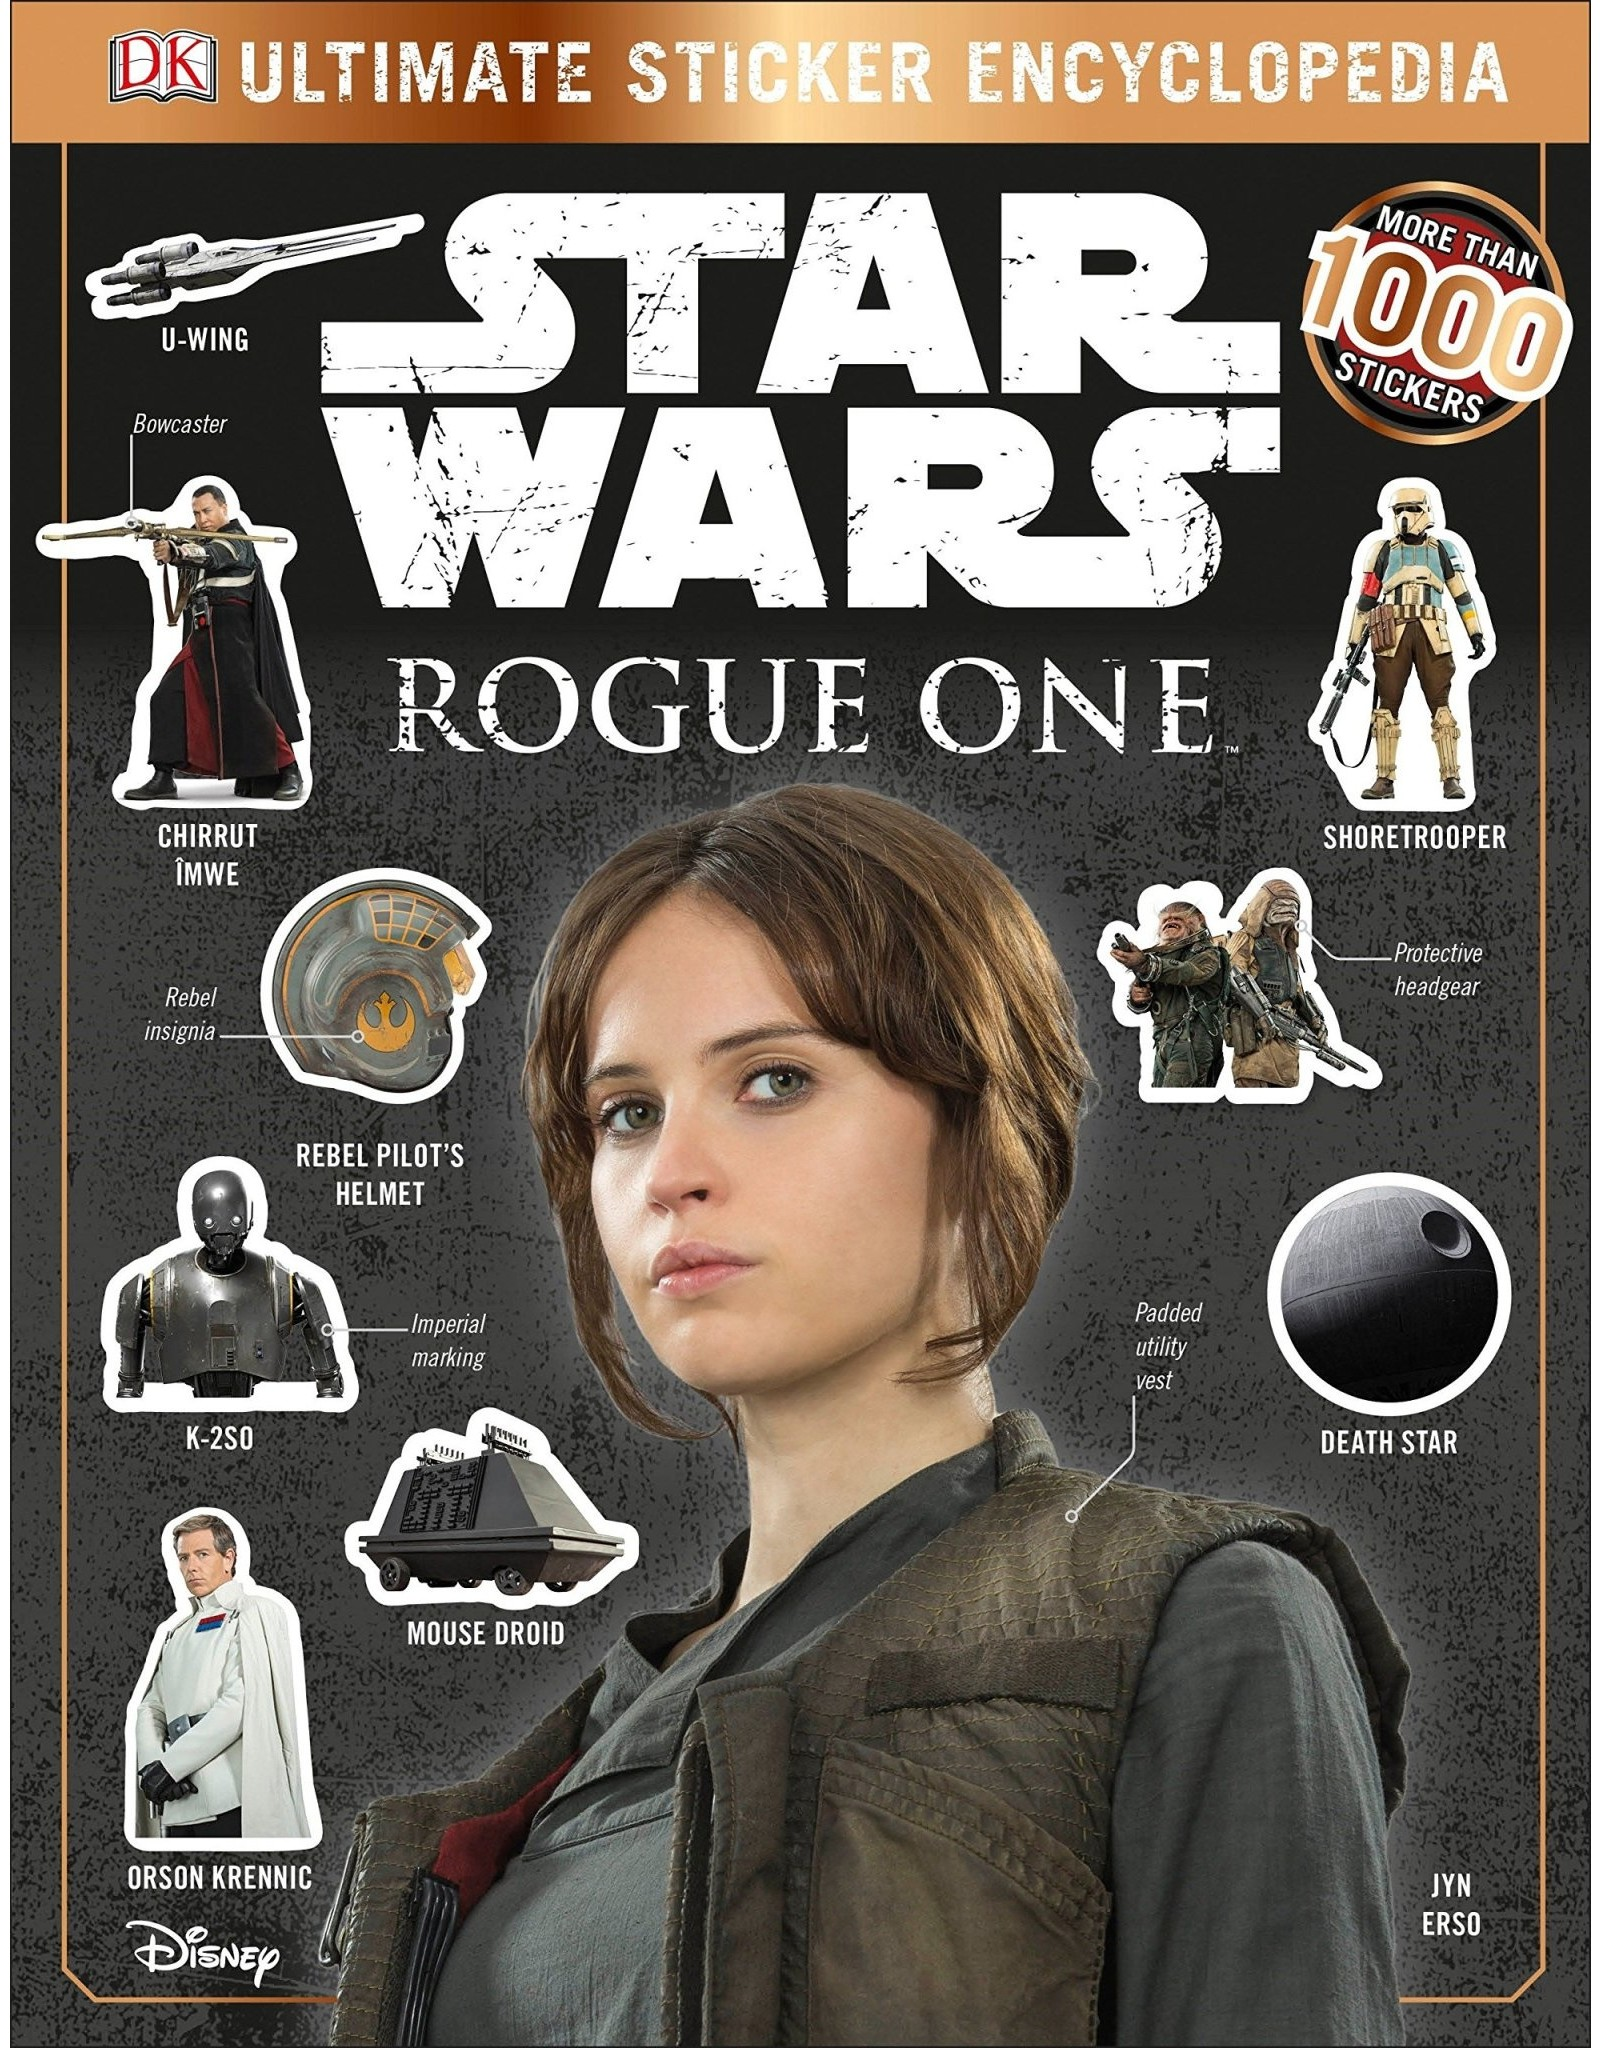 Star Wars Star Wars Rogue One Ultimate Sticker Encyclopedia